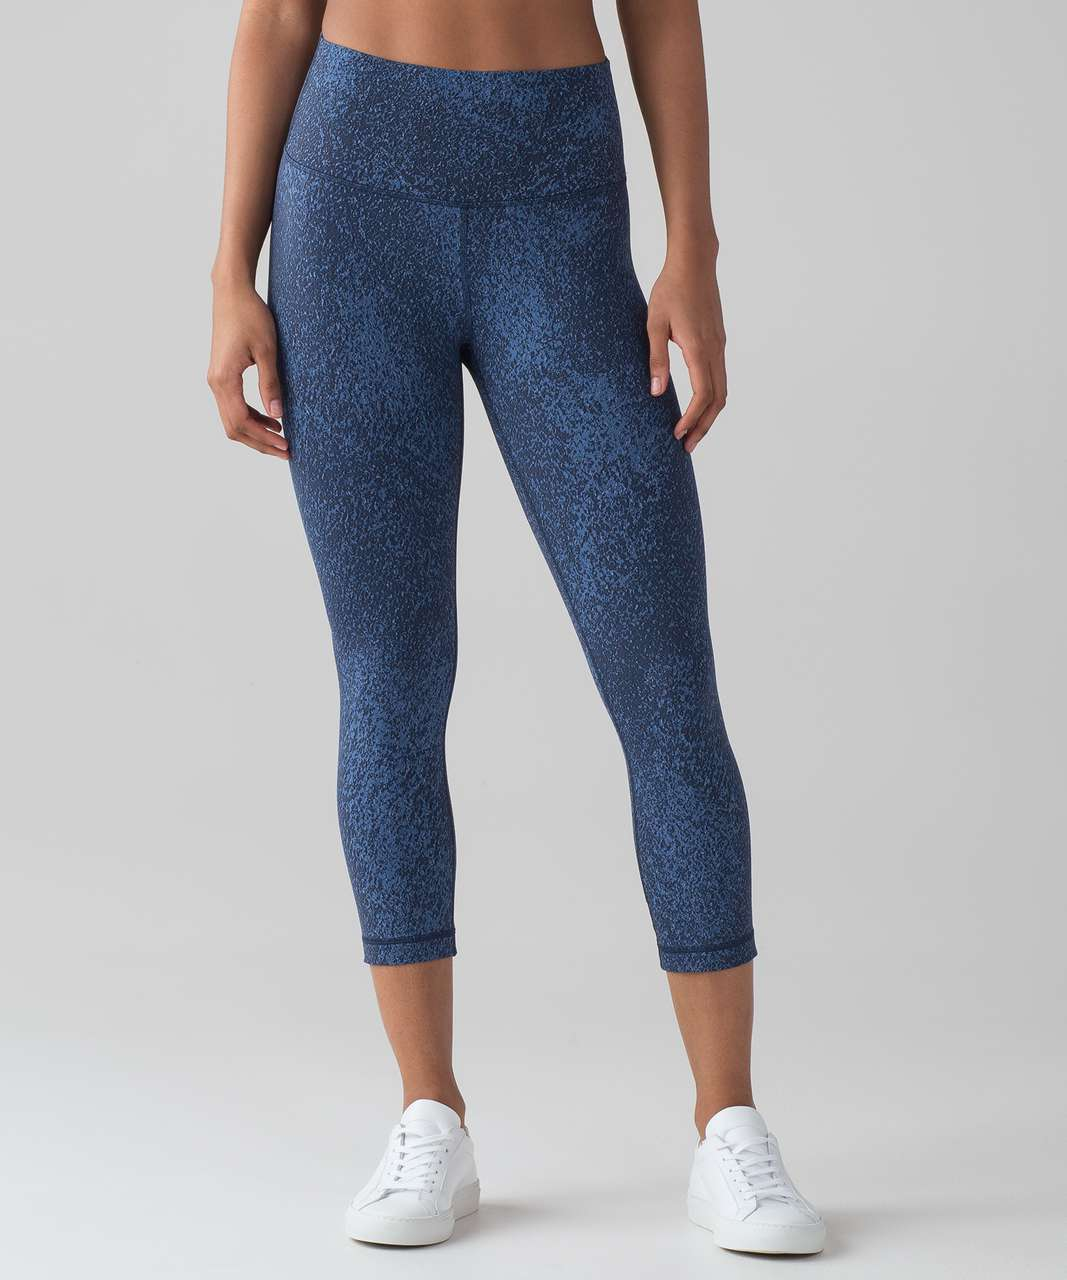 Lululemon Wunder Under Crop (Hi-Rise) (Luxtreme) - Power Luxtreme Mineral Deposit Lunar Eclipse Royal